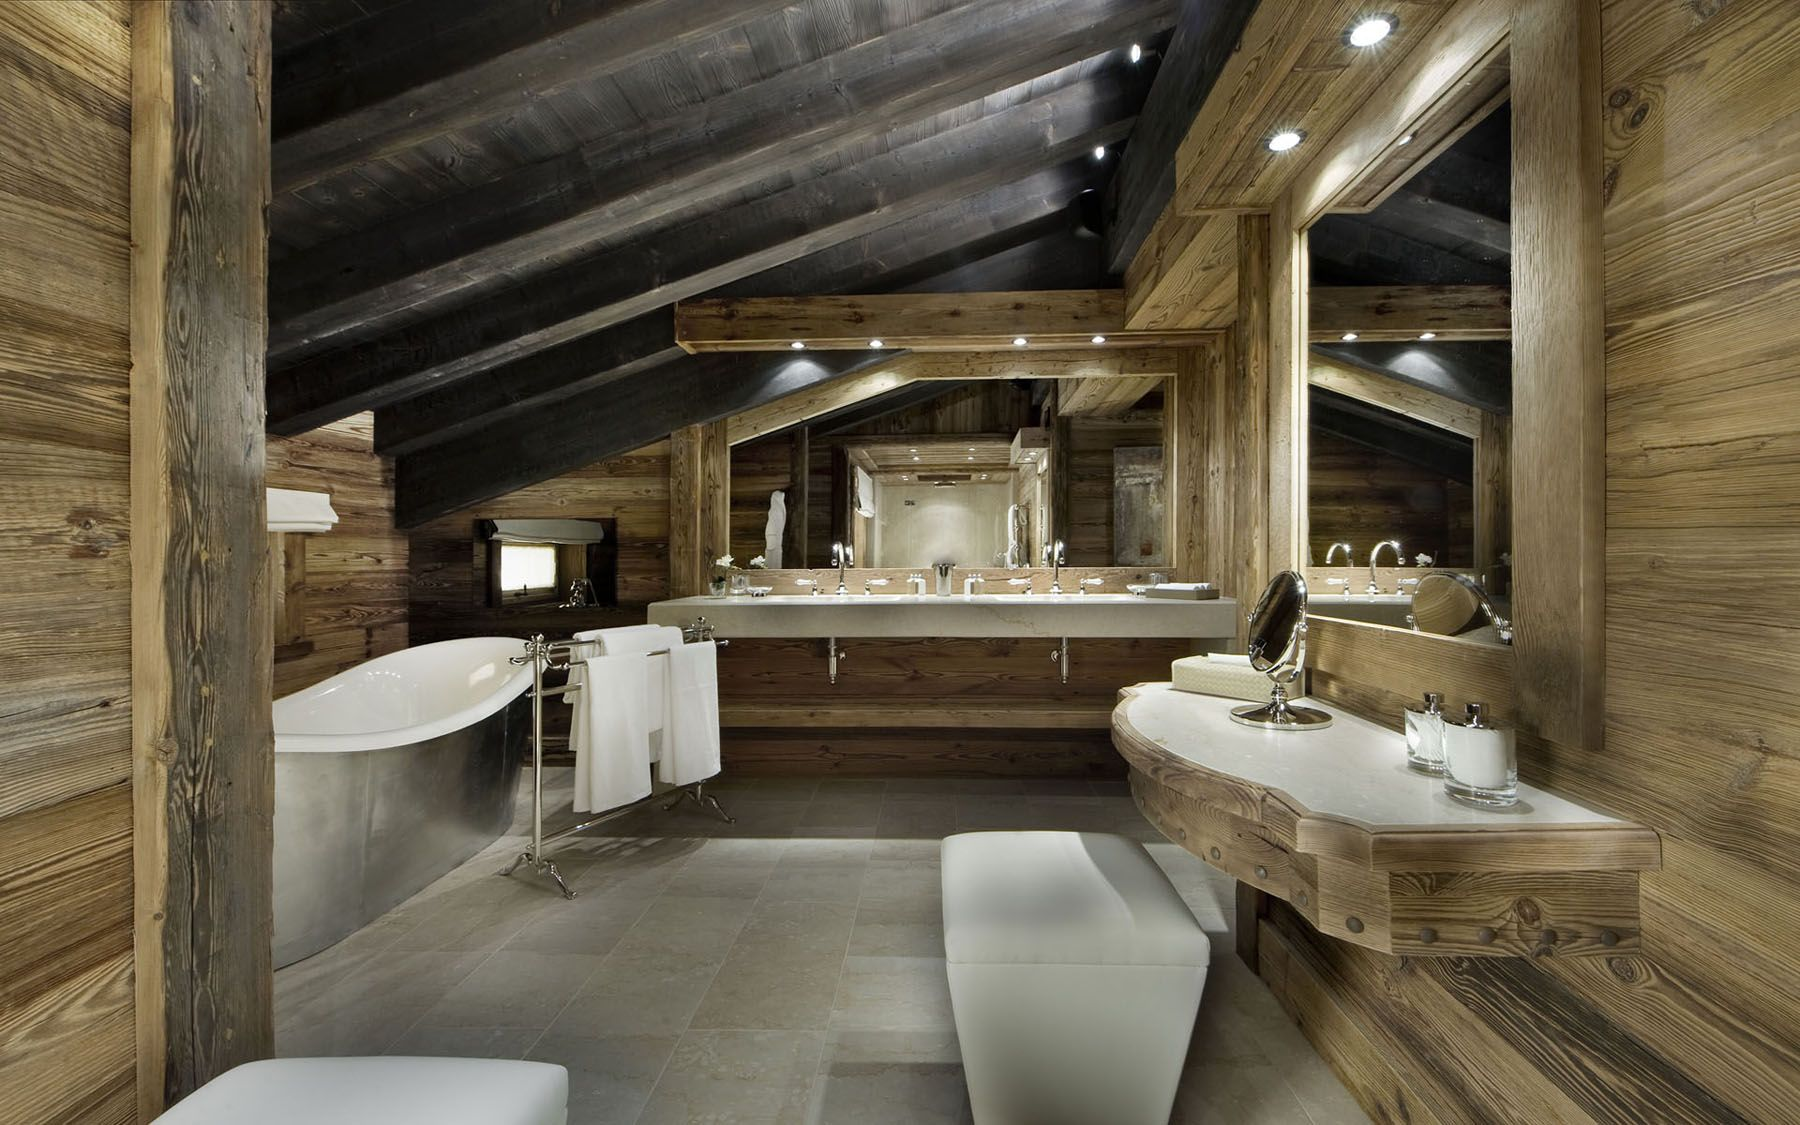 Rustic Elegant Bathroom | Notre chalet | Pinterest | Nightclub ...